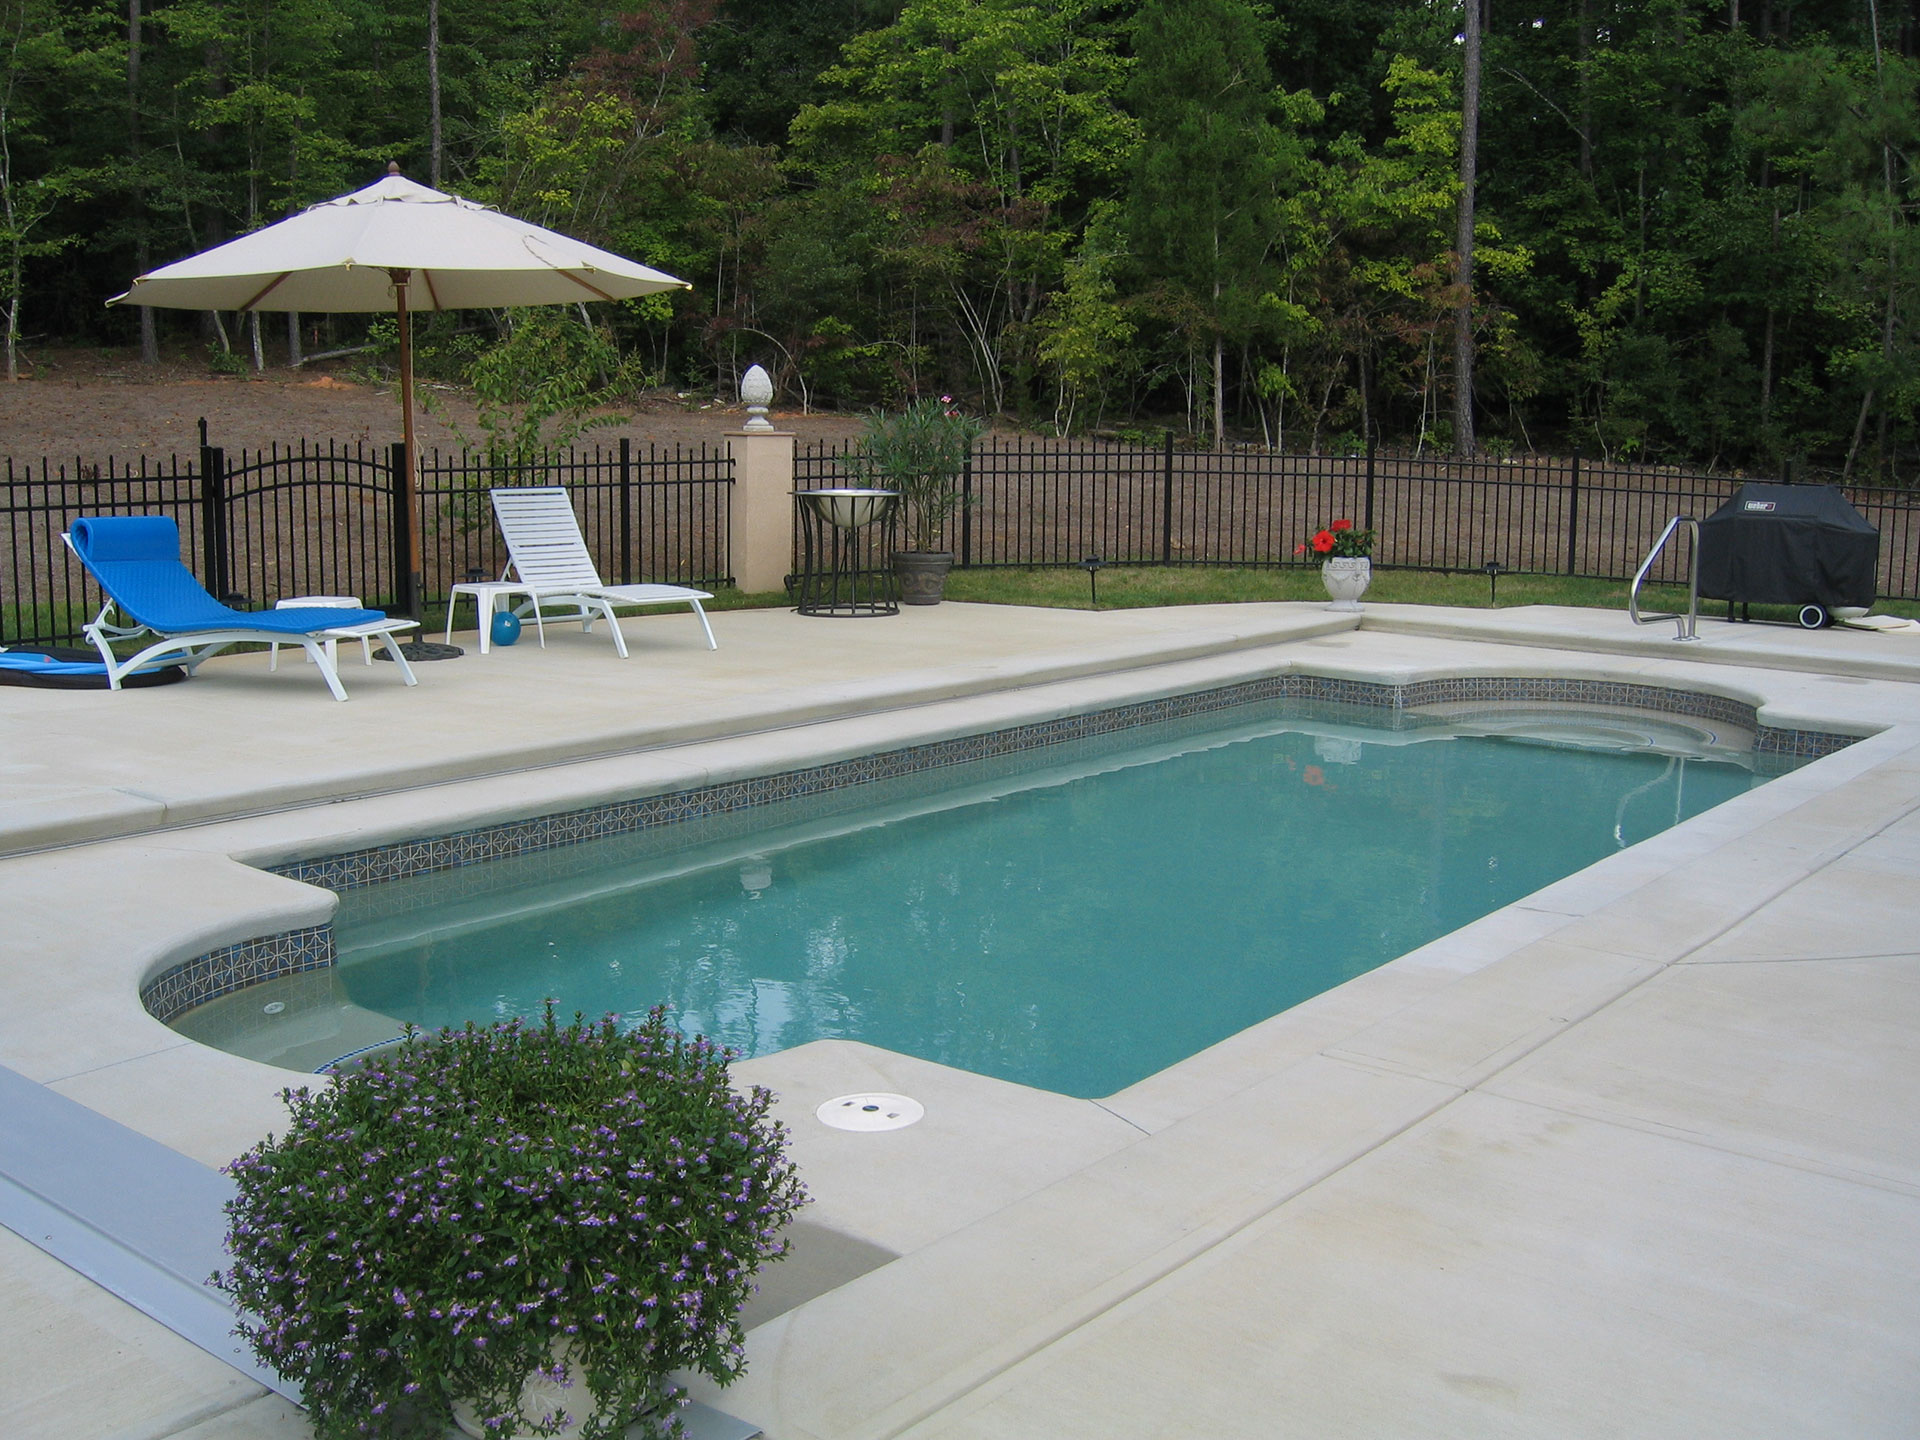 Raleigh fiberglass pools in ground above designs for Fiberglass pools above ground